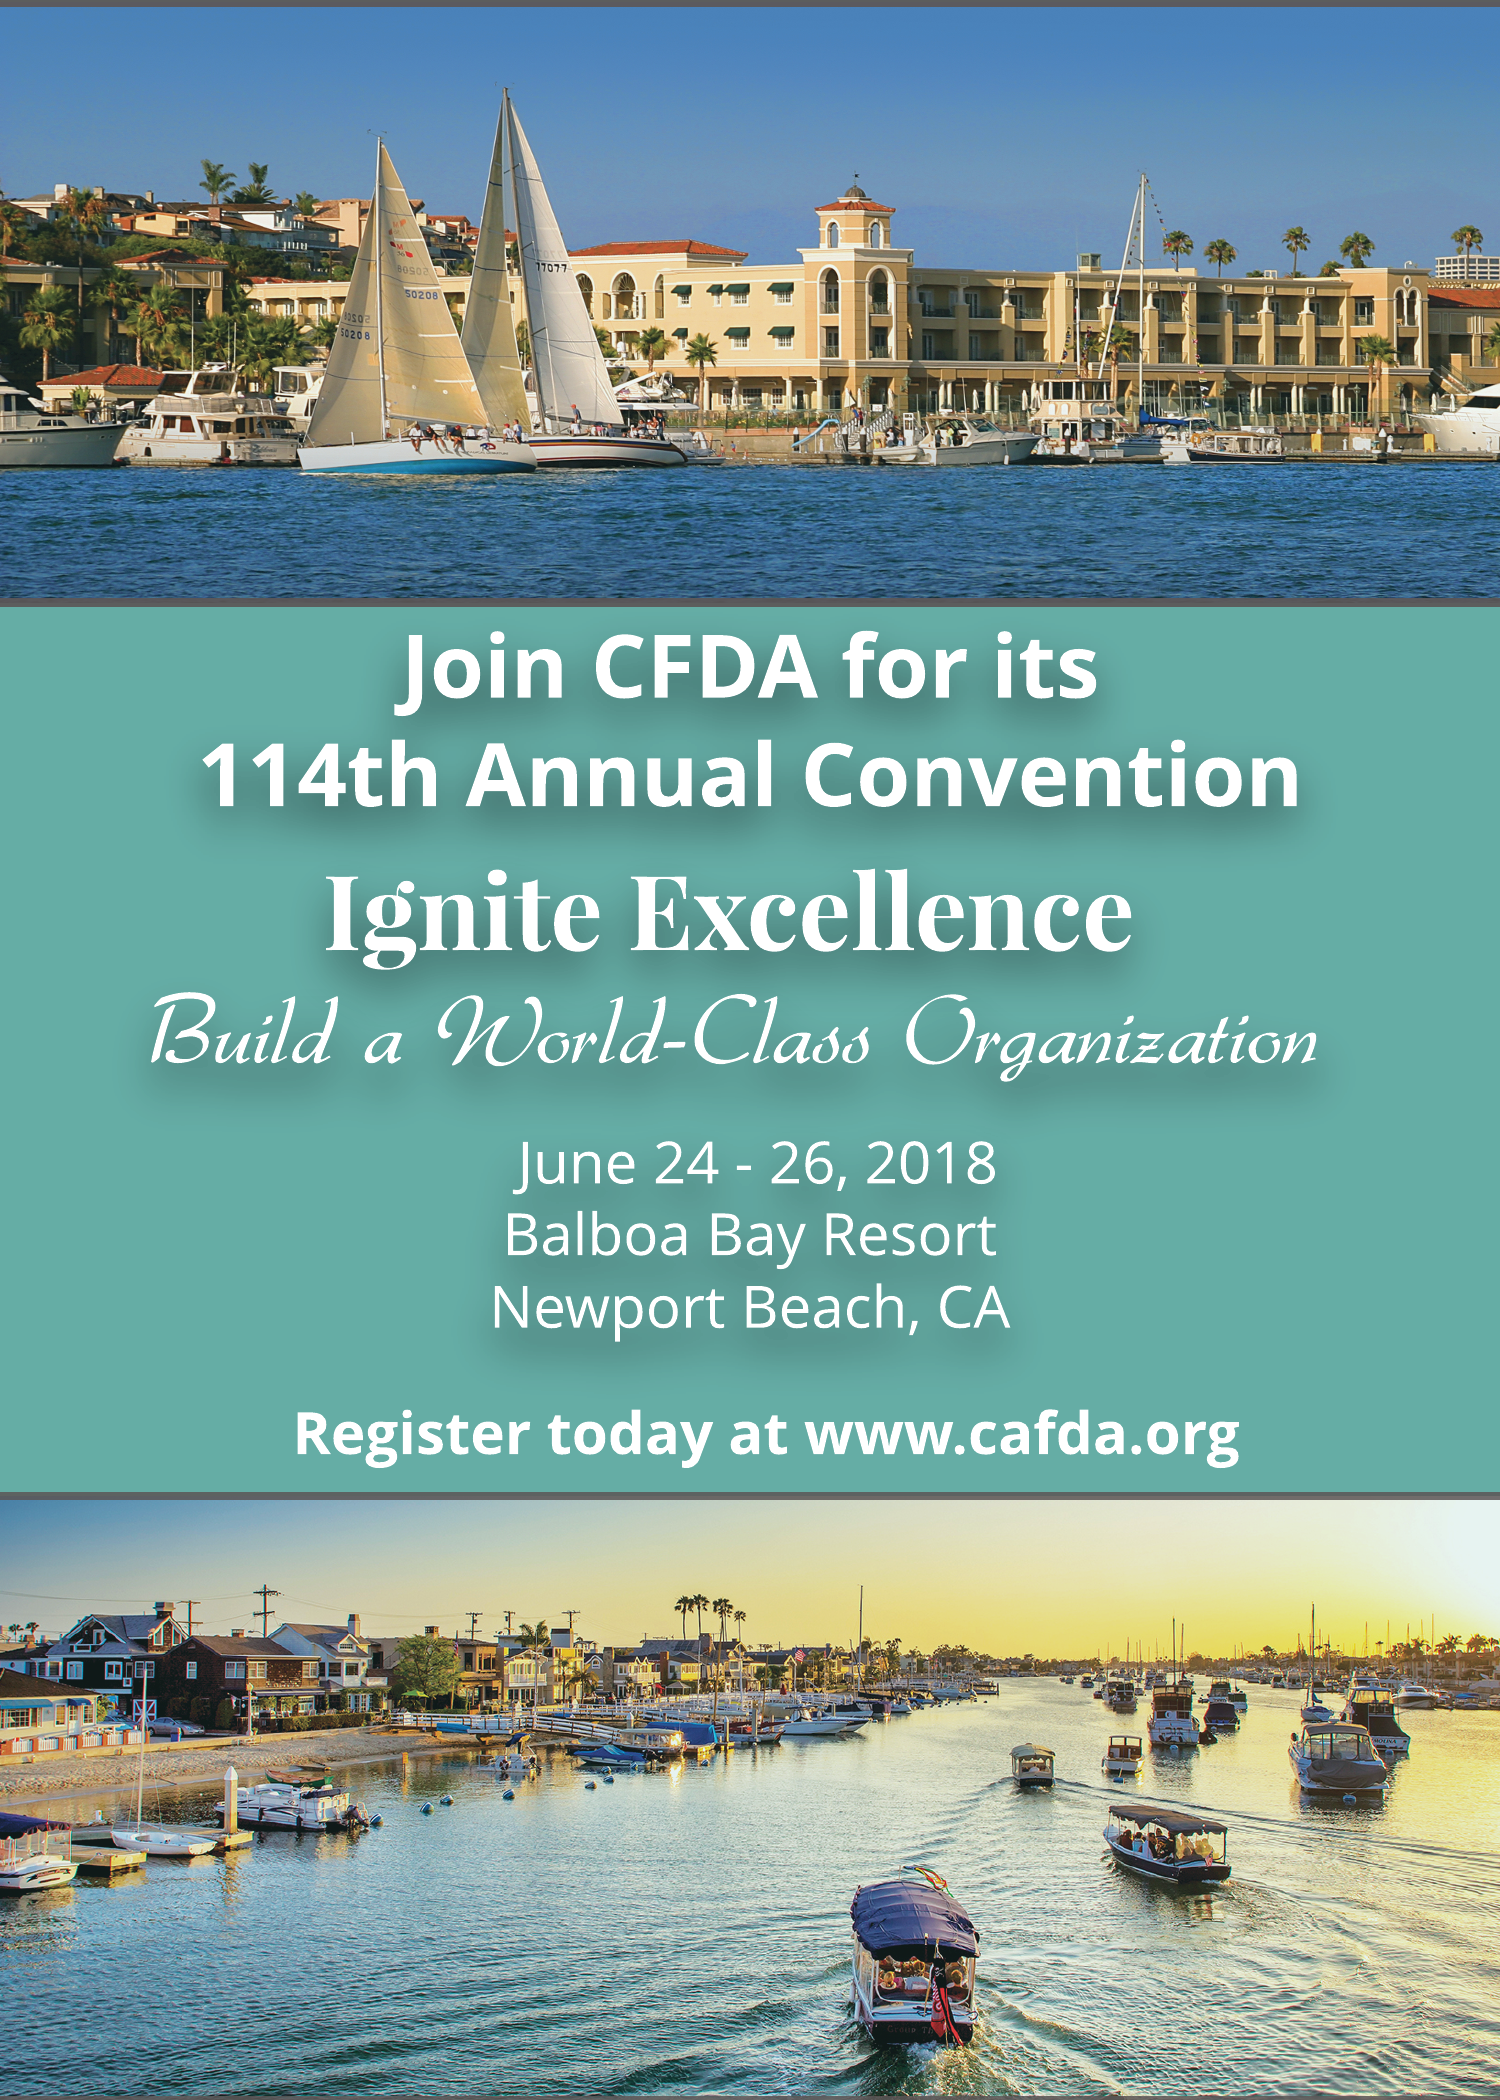 CFDA 2018 Annual Convention